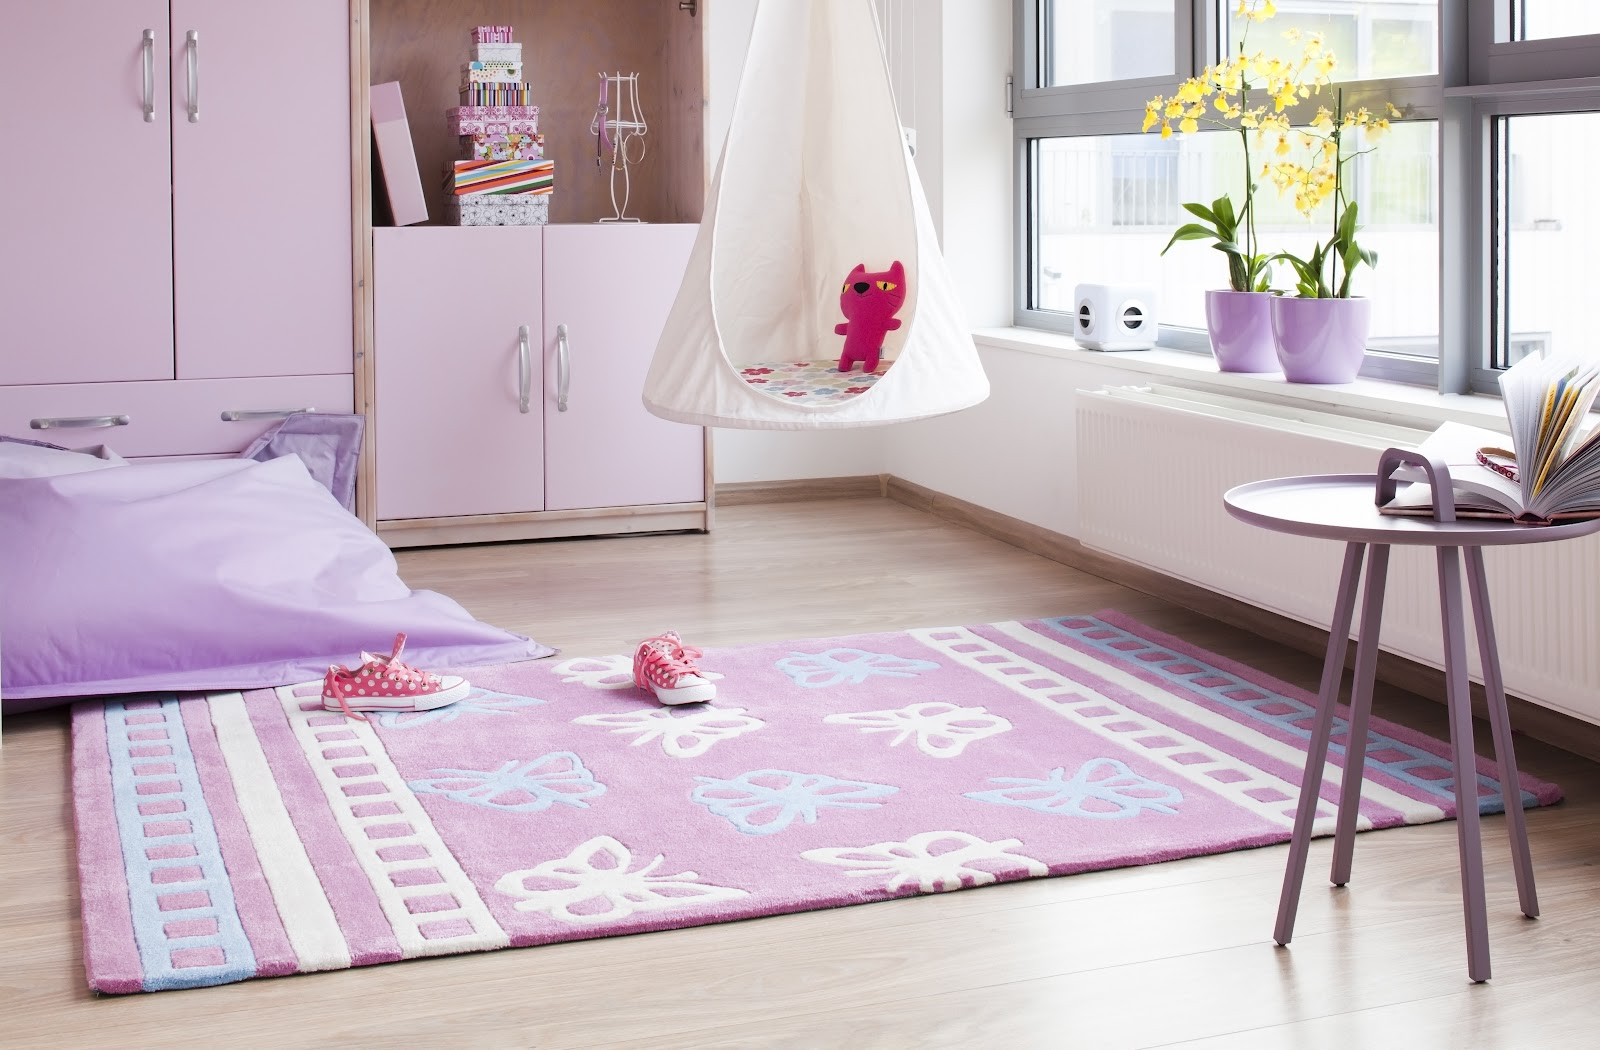 Kinderkamer decoraties: tips om je kinderkamer in te richten ...